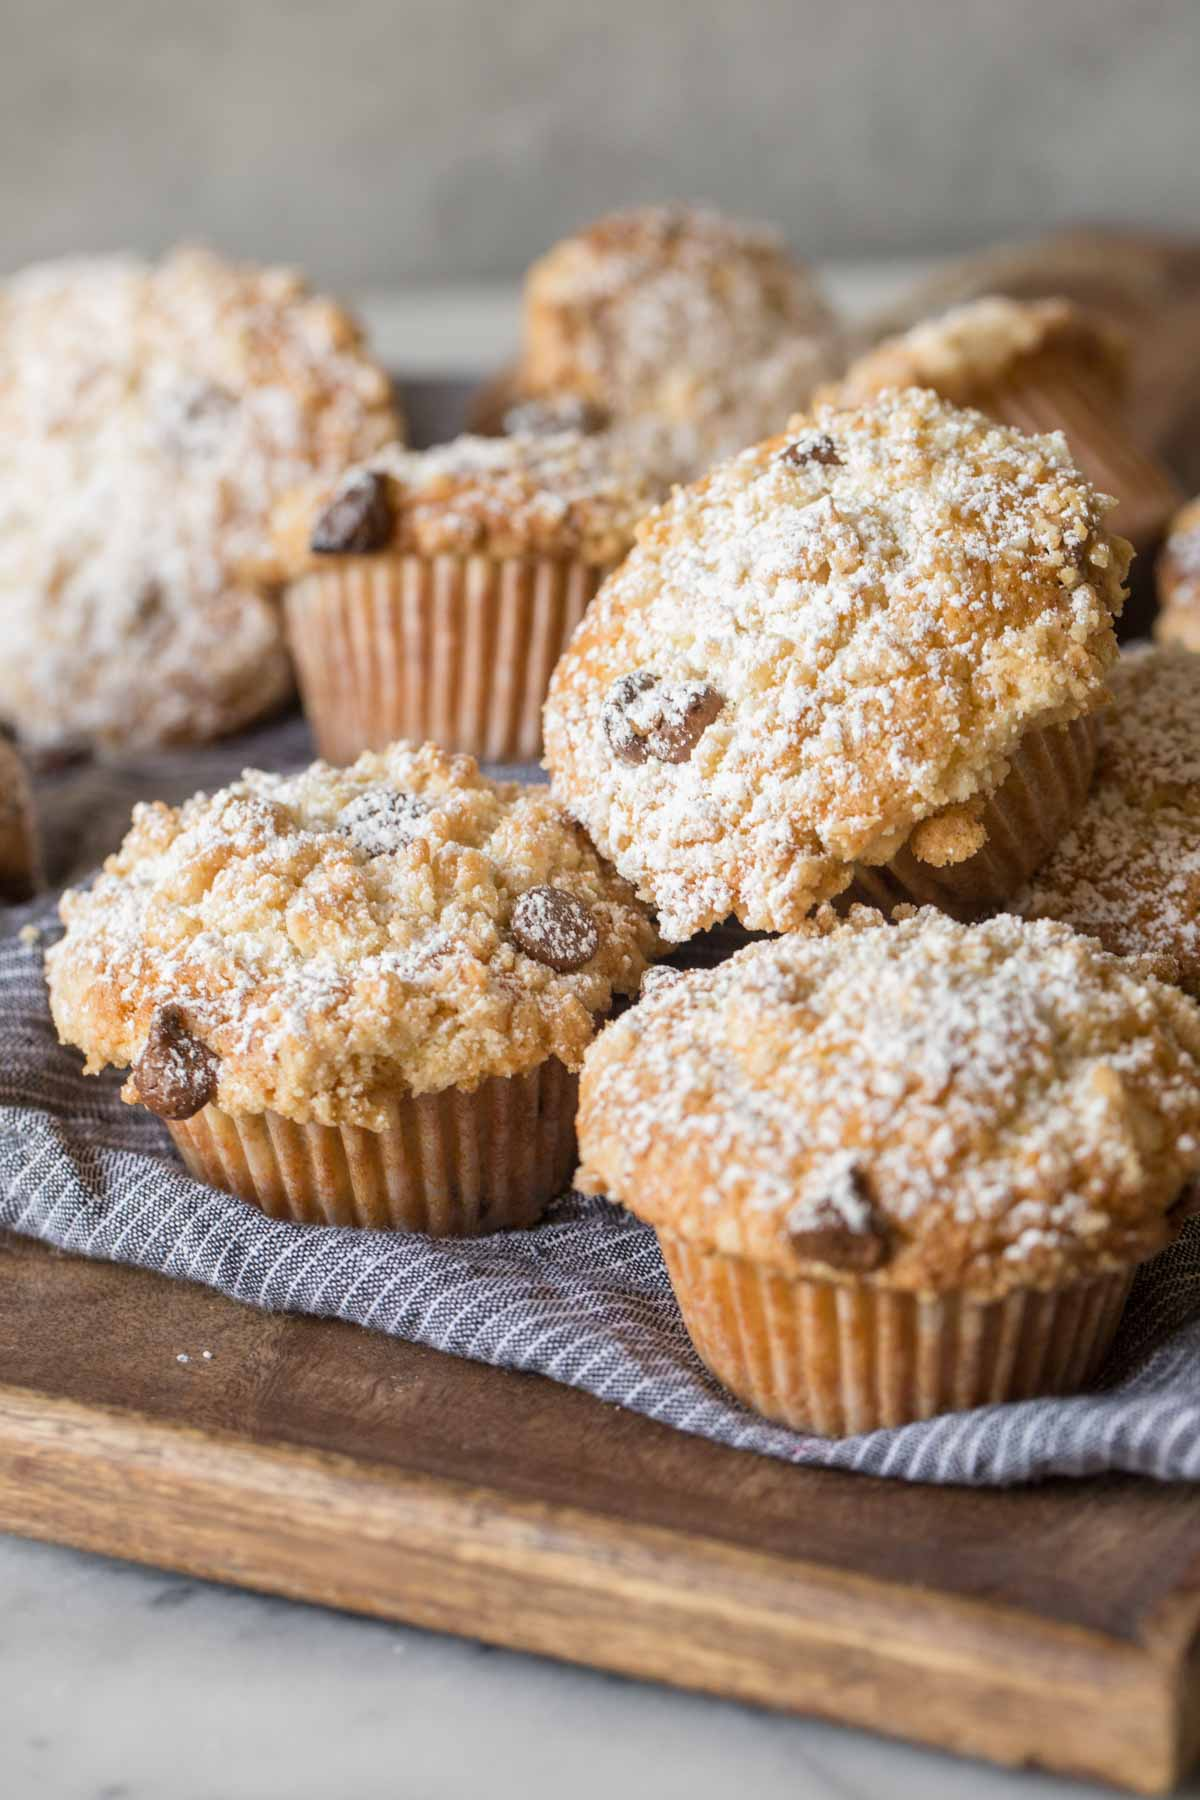 Close up shot of Chocolate Chip Muffins on a blue cloth on top of a wood cutting board.